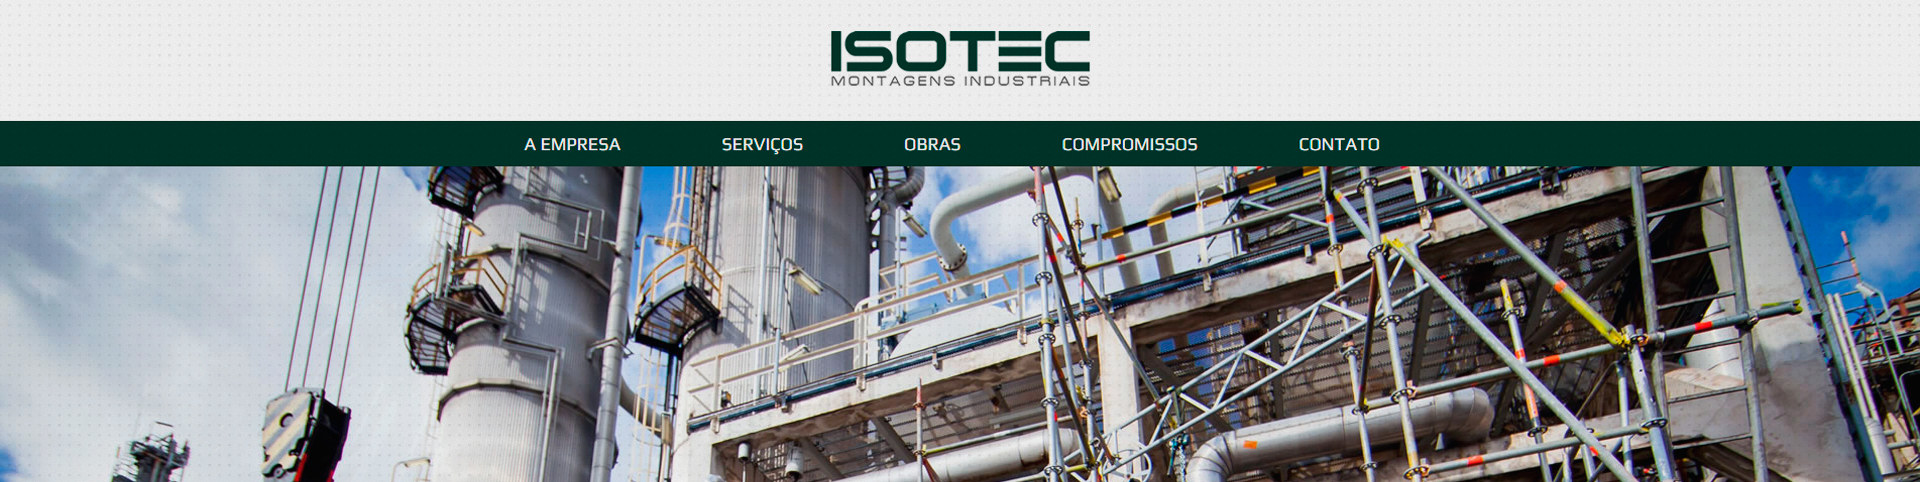 Site Isotec Montagens